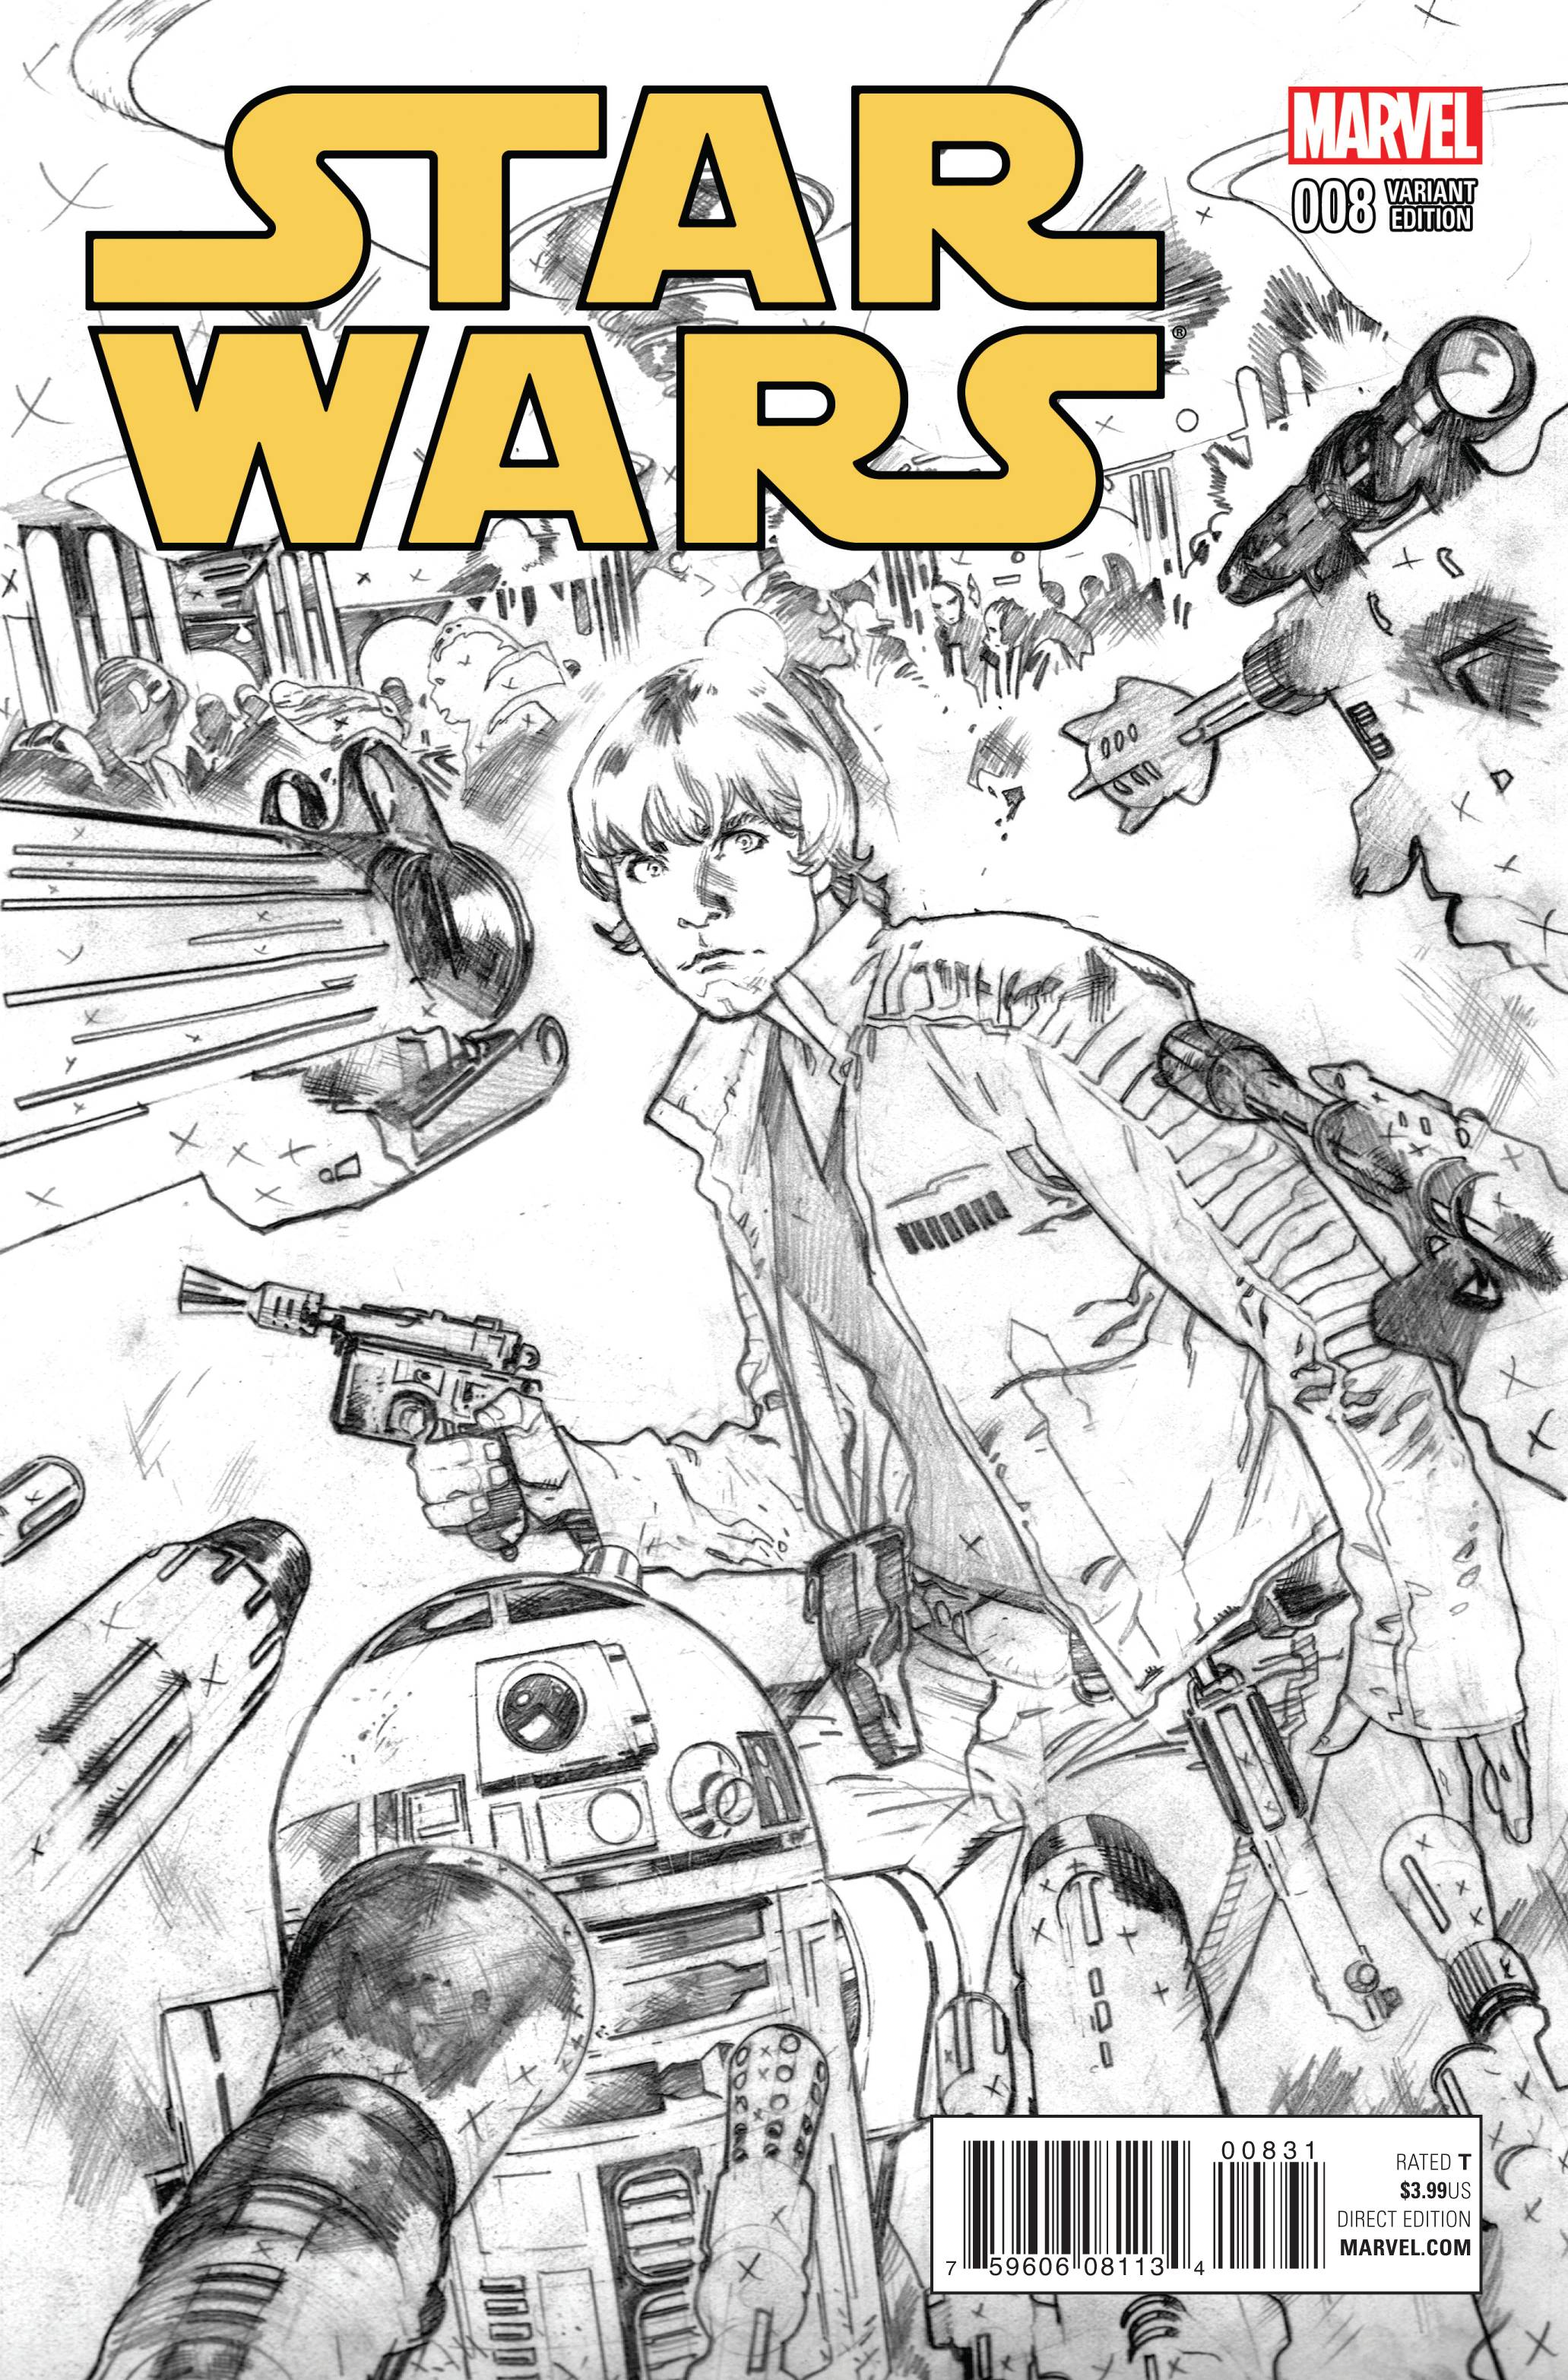 Star Wars #8 (Stuart Immonen Sketch Variant Cover) (19.08.2015)